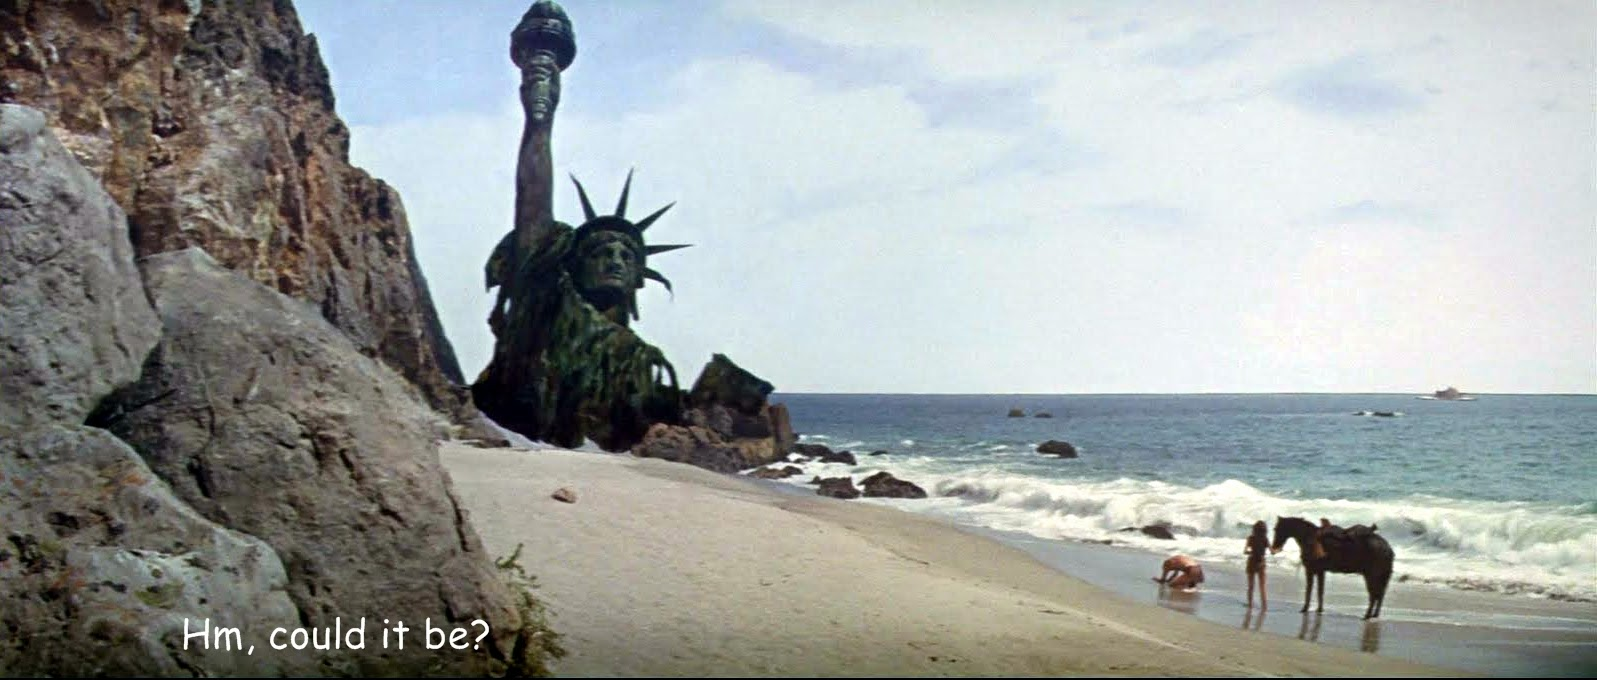 Planet of the Apes Liberty